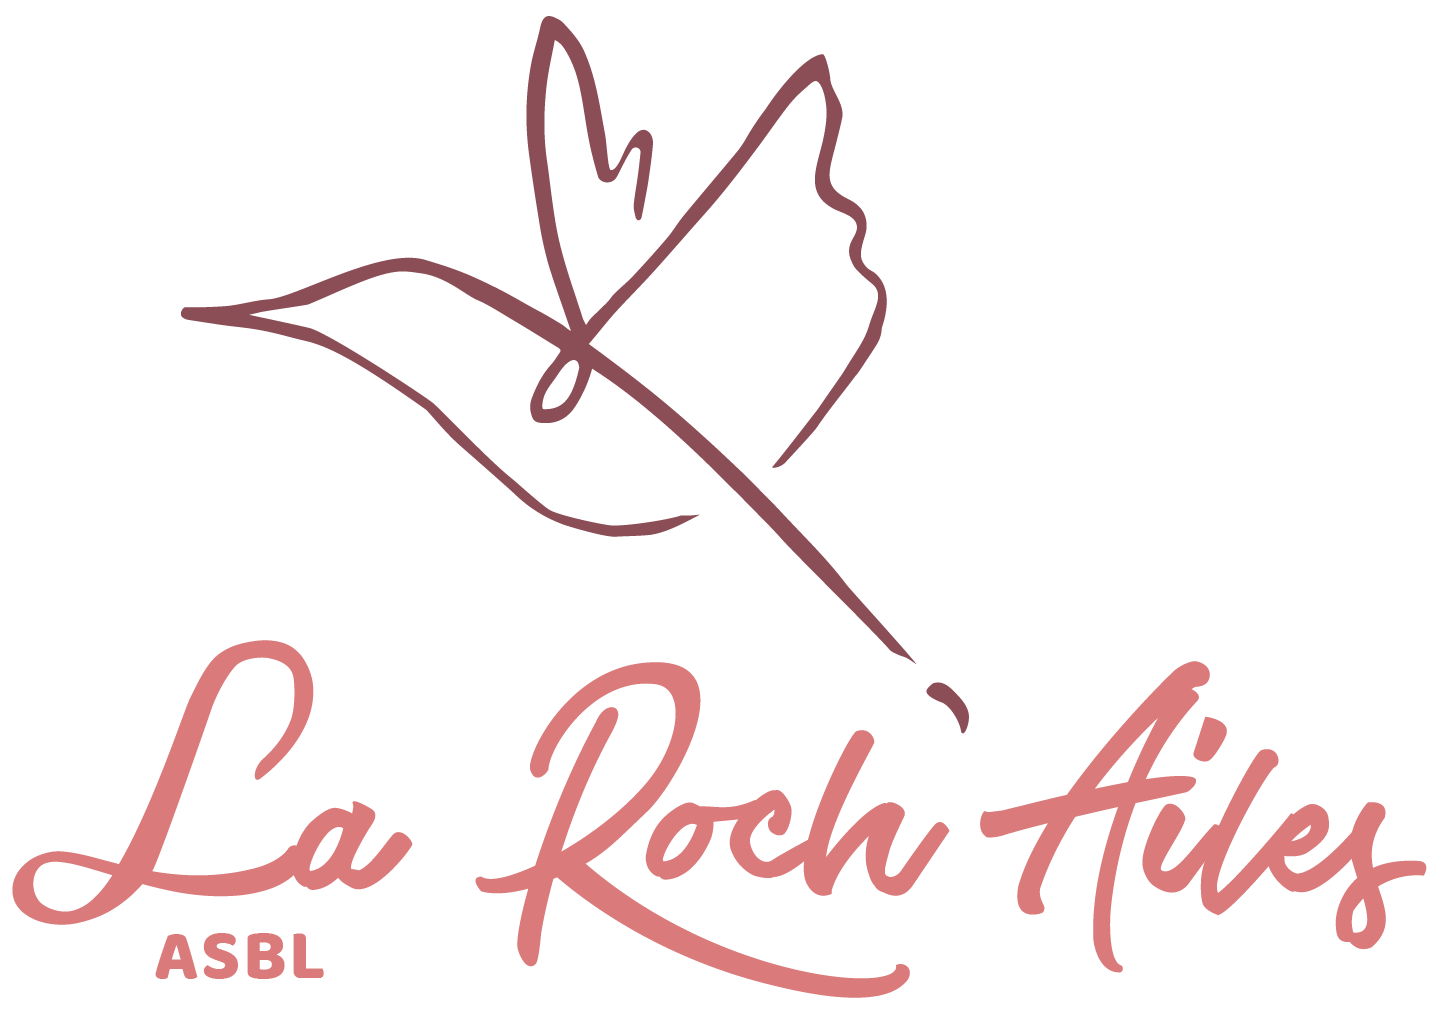 LOGO final LAROCHAILES ASBL_Transparent-04